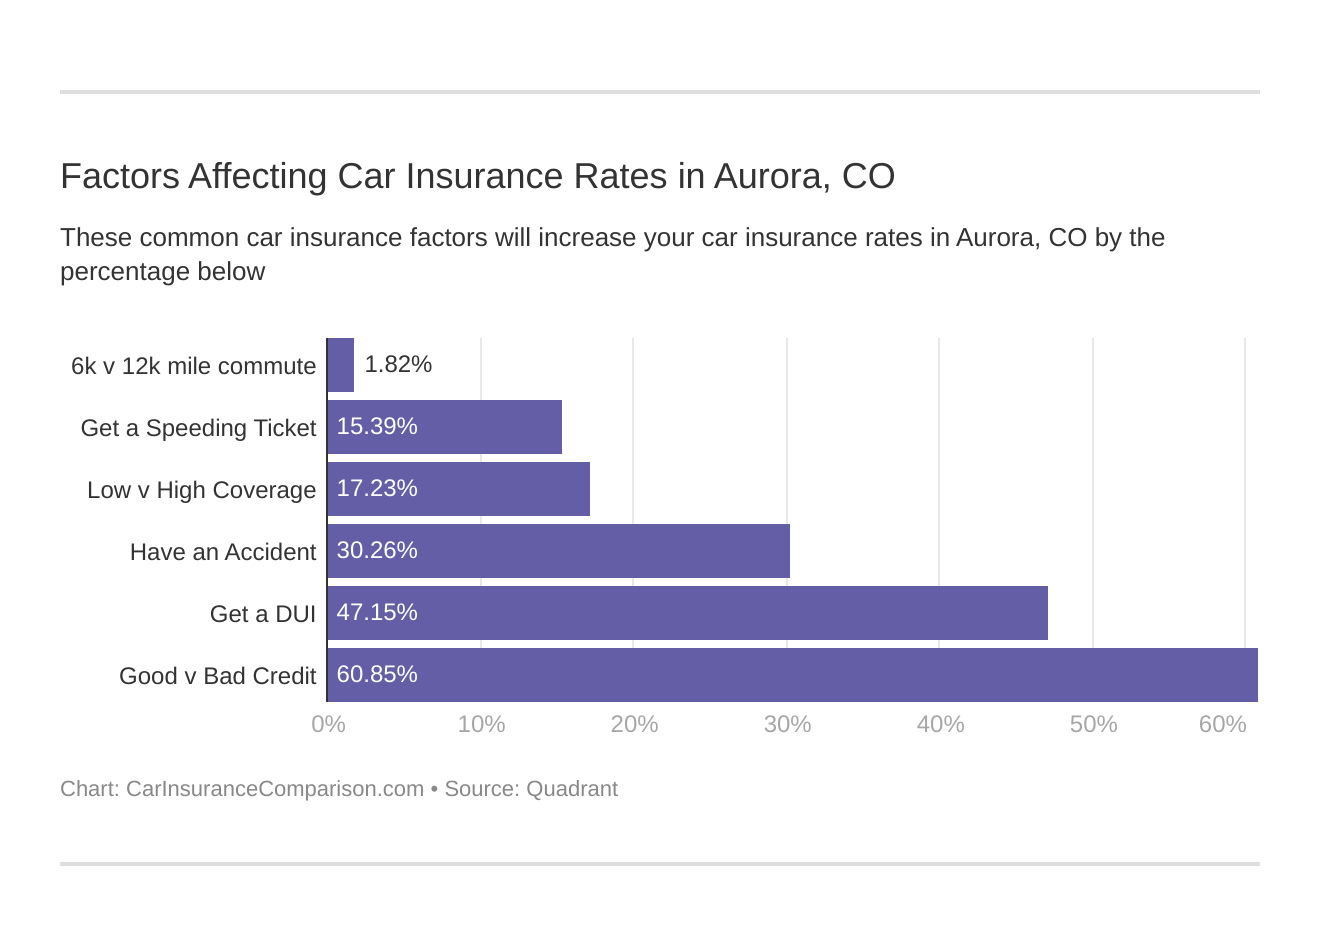 Factors Affecting Car Insurance Rates in Aurora, CO